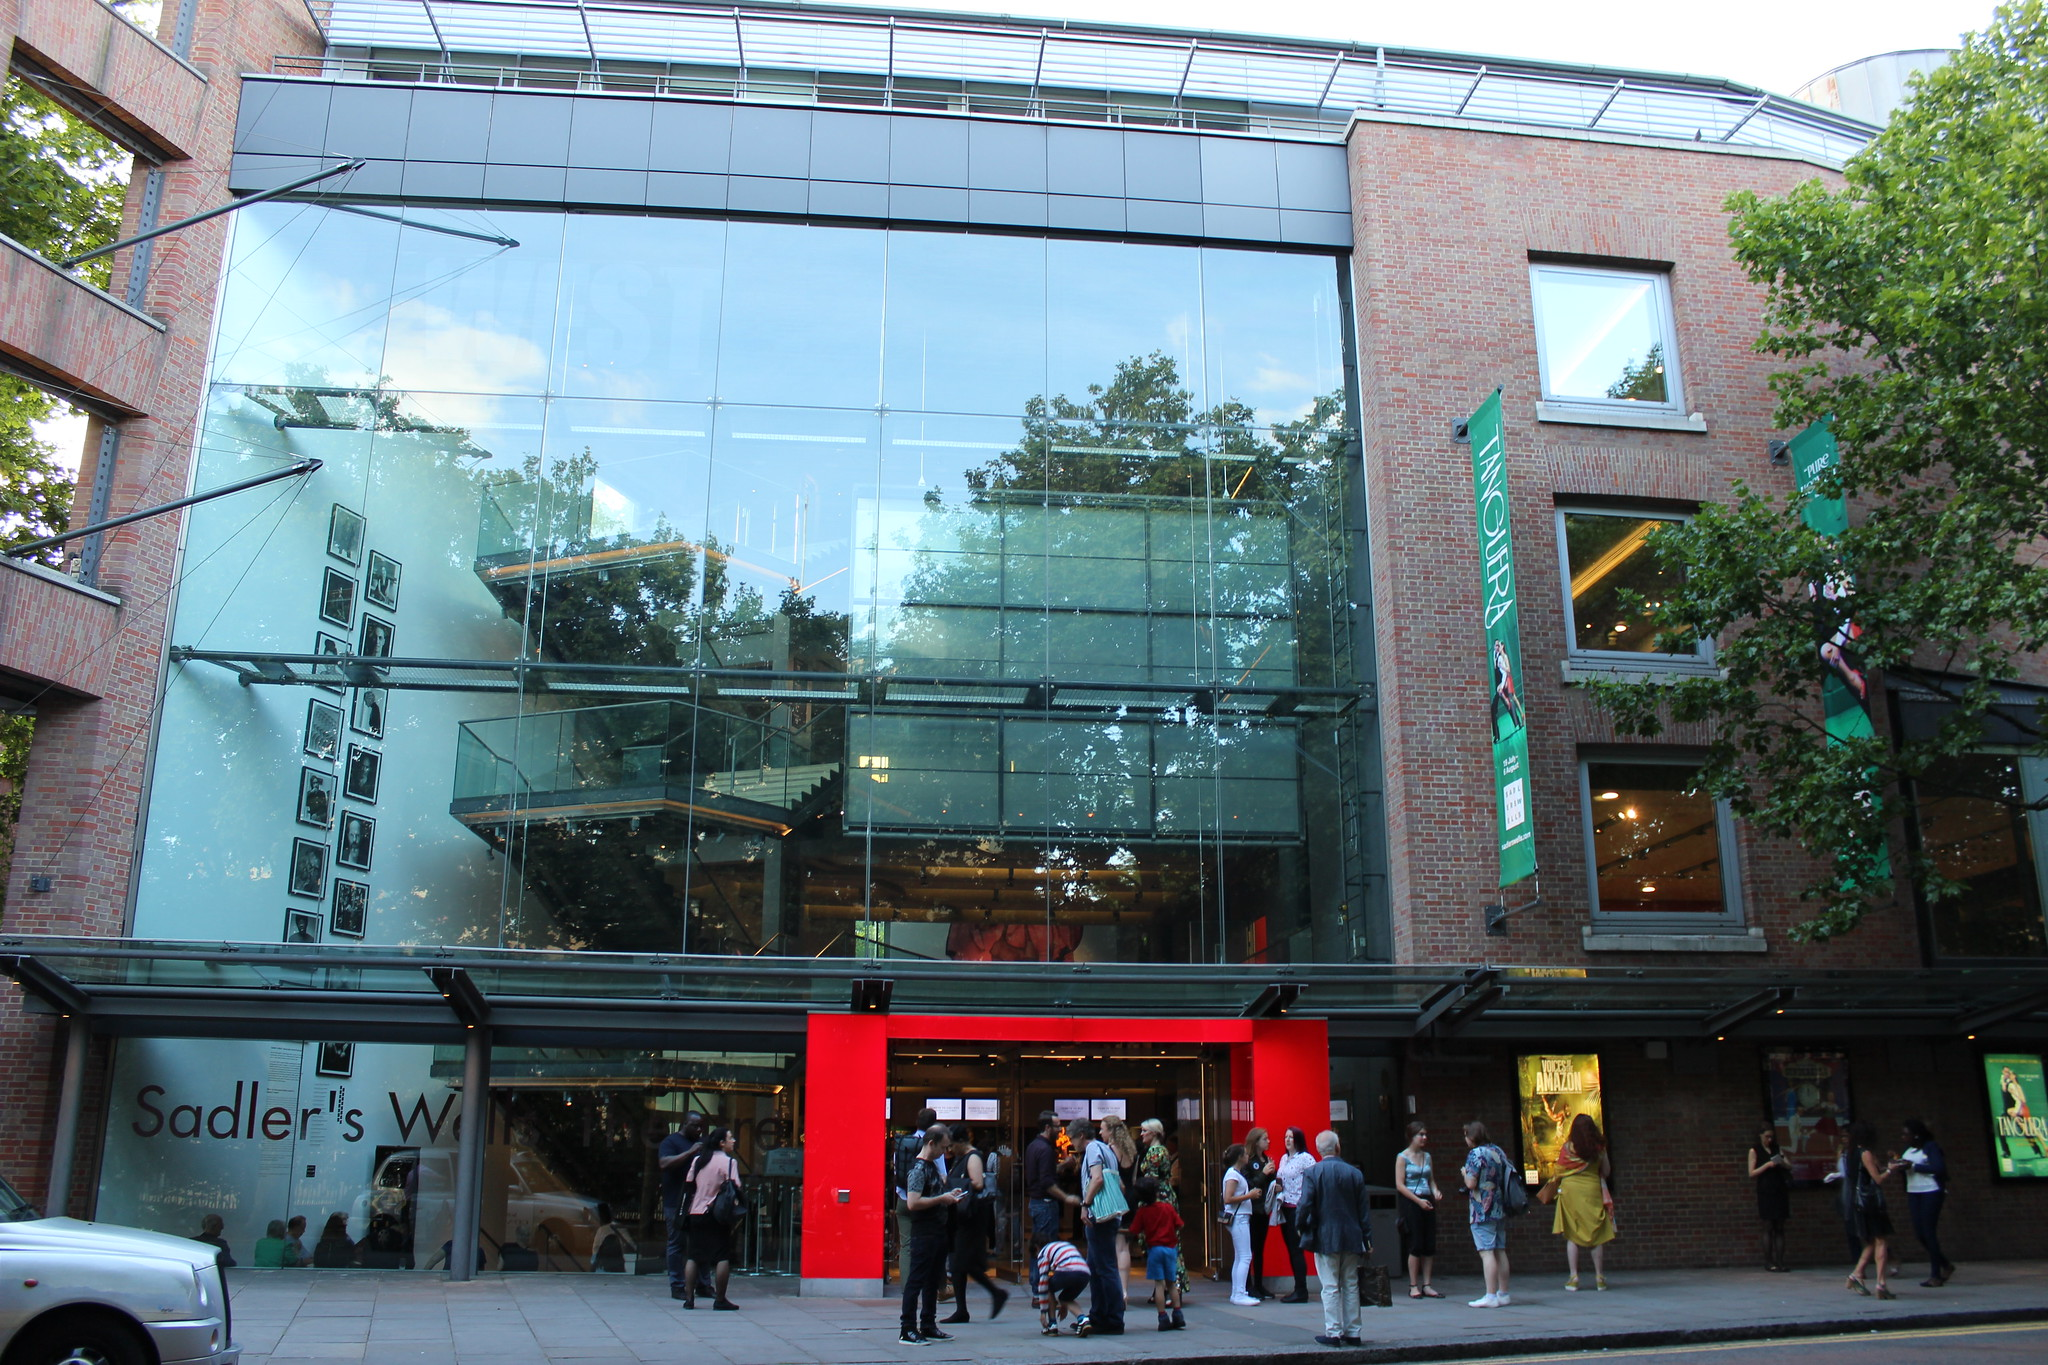 Sadler's Wells 2